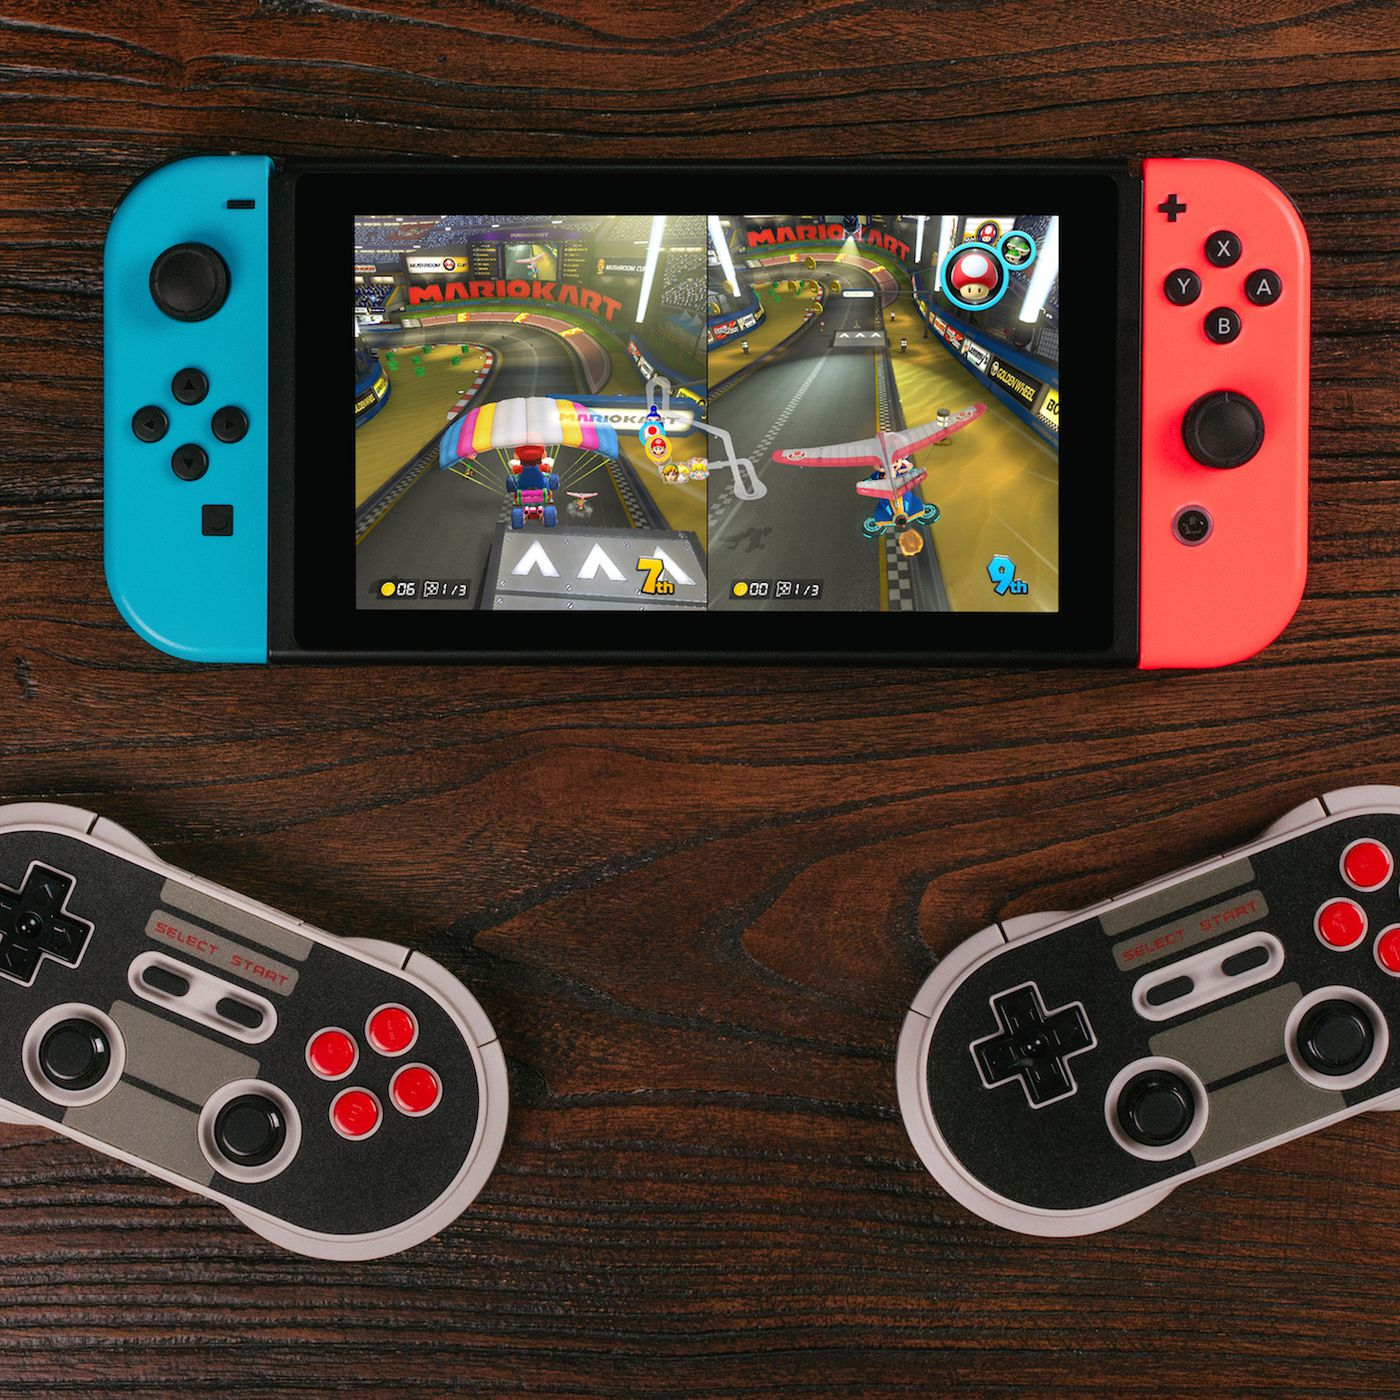 8bitdo's NES30 Pro controller is an almost perfect Nintendo Switch